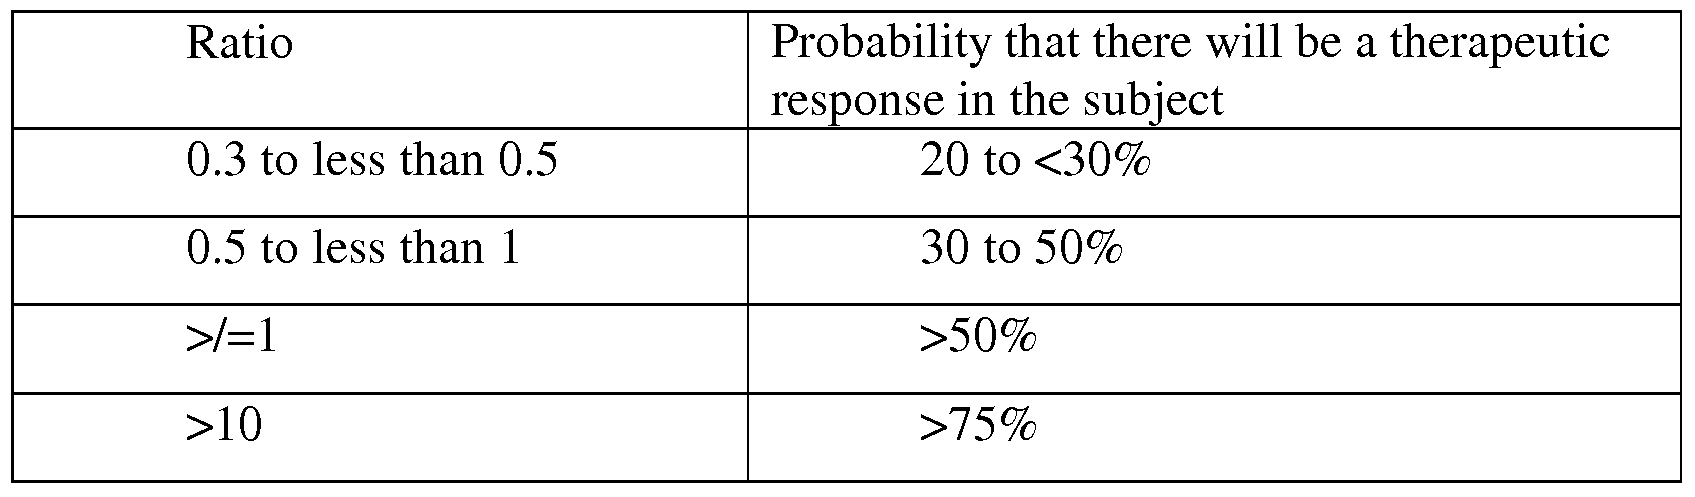 WO2009064657A1 - Method of determining the probability of a